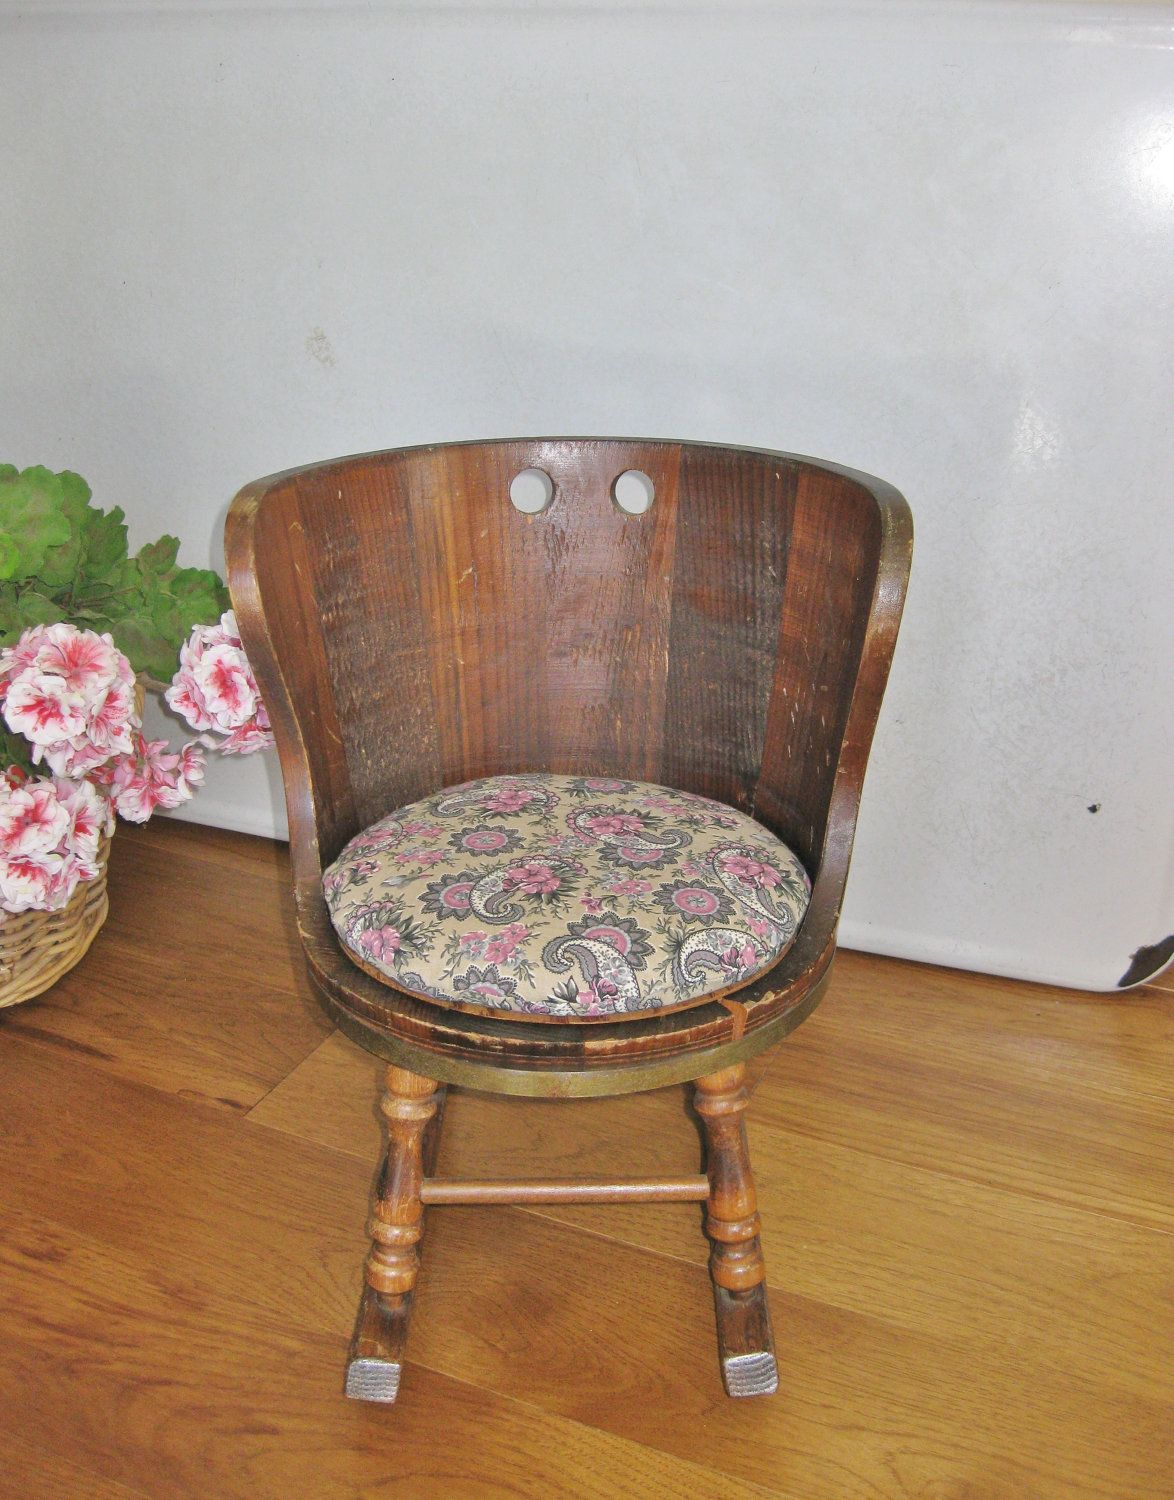 Antique barrel chairs - Early American Childs Rocking Chair Barrel Shaped Dark Pine Colonial Style 1960s Rocker Putney Vermont Basketville